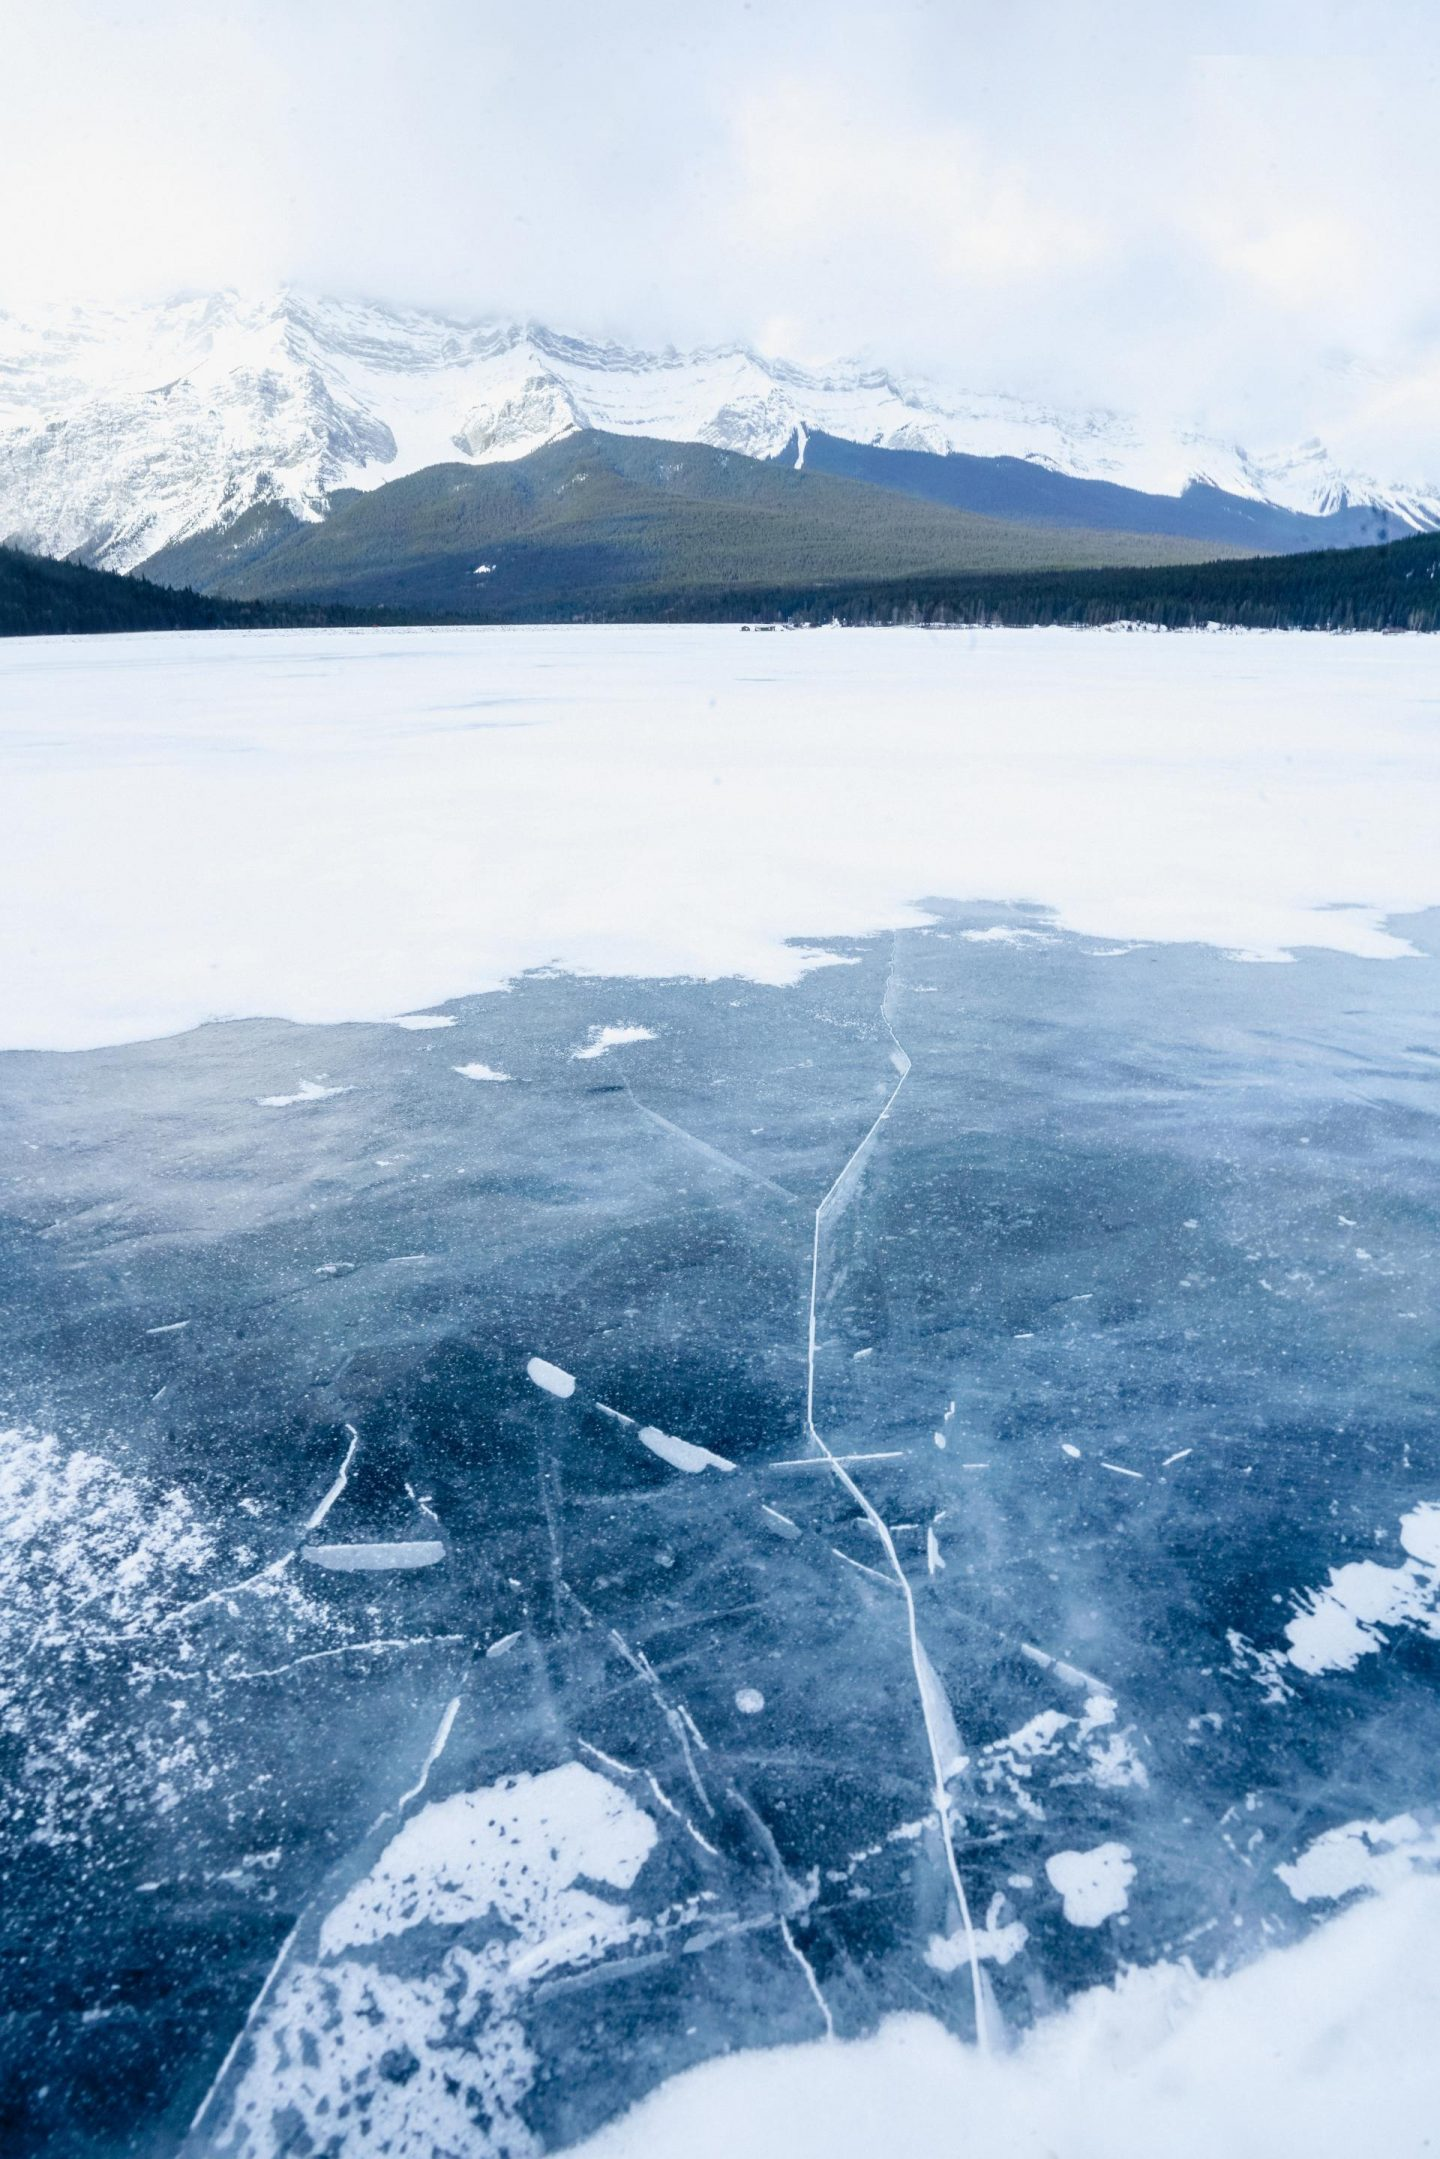 Searching for methane bubbles at Lake Minnewanka.